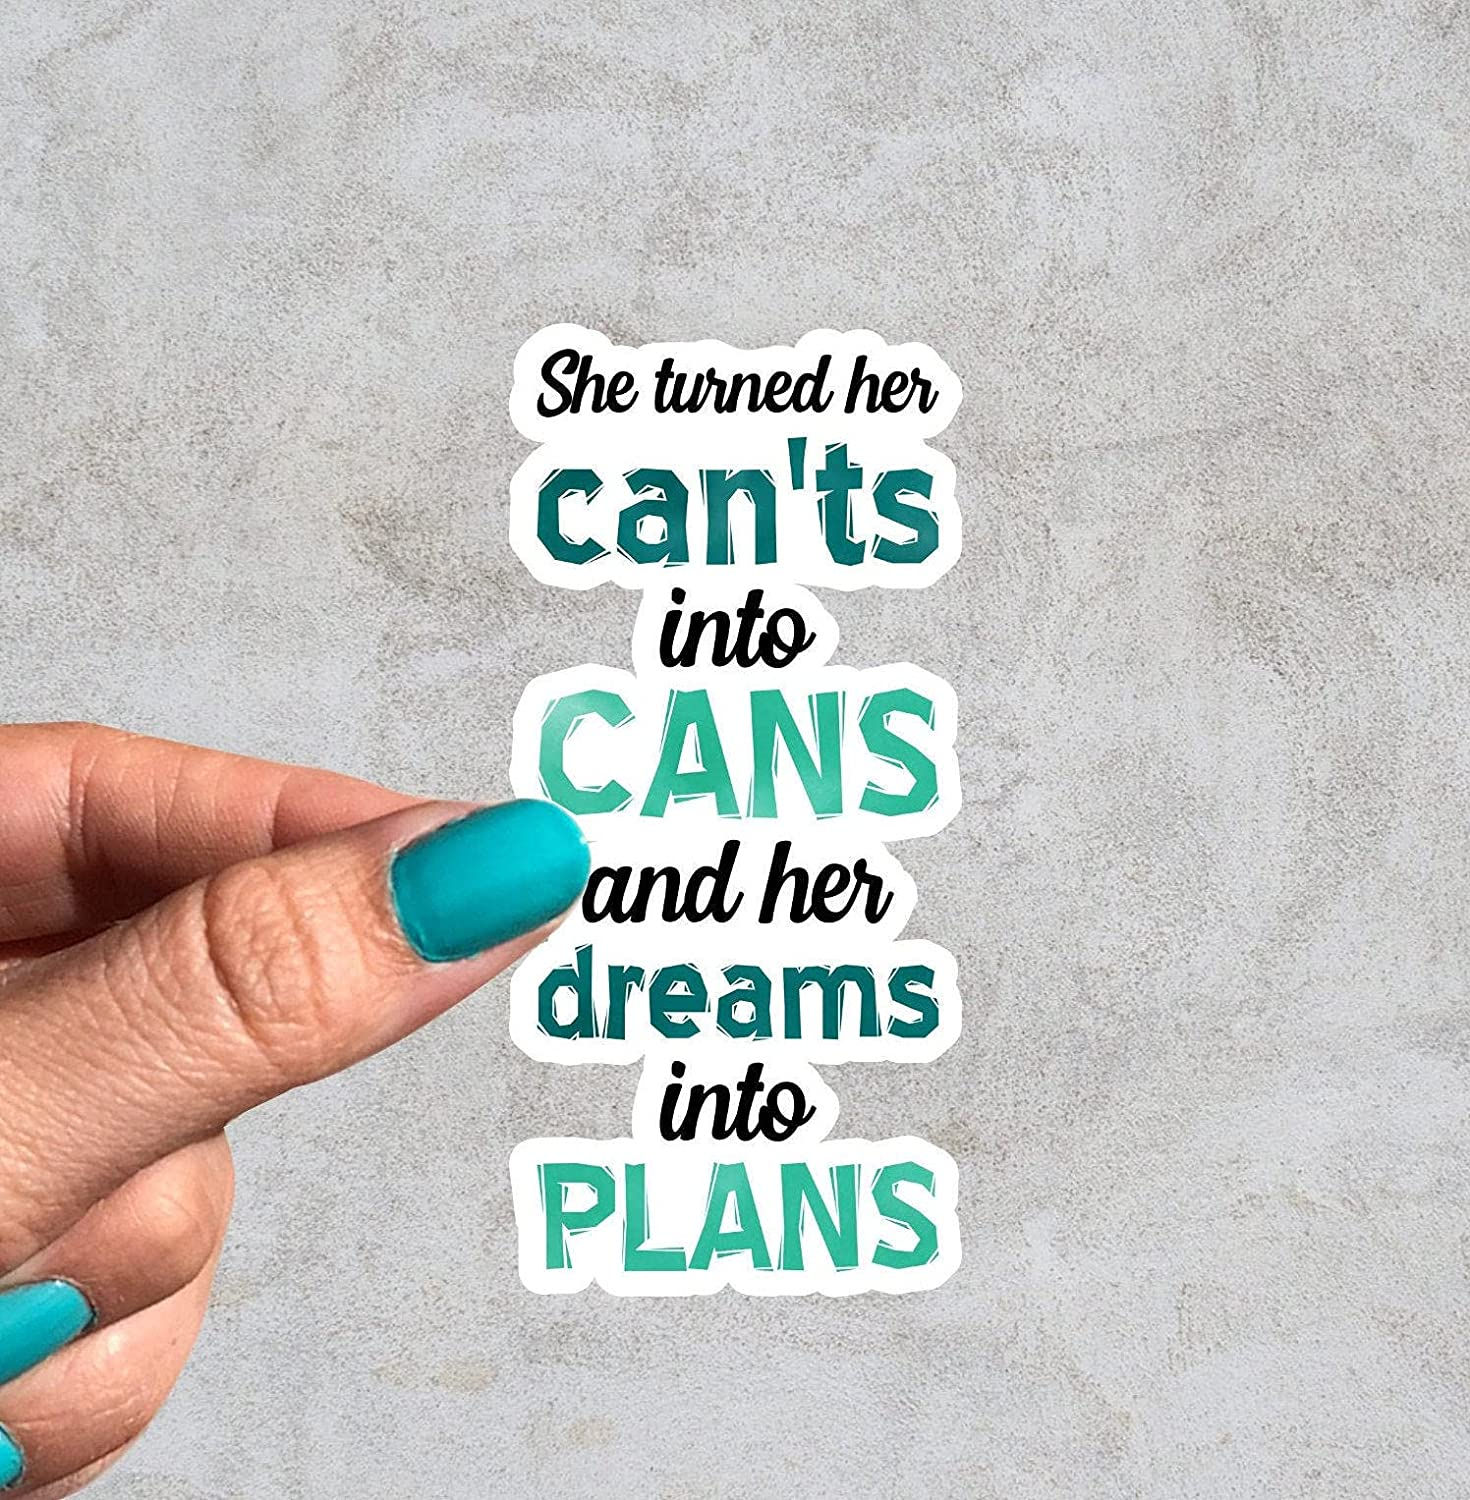 She Turned Her Cants Fashionable into Cans Self Elegant C Dreams and Plans